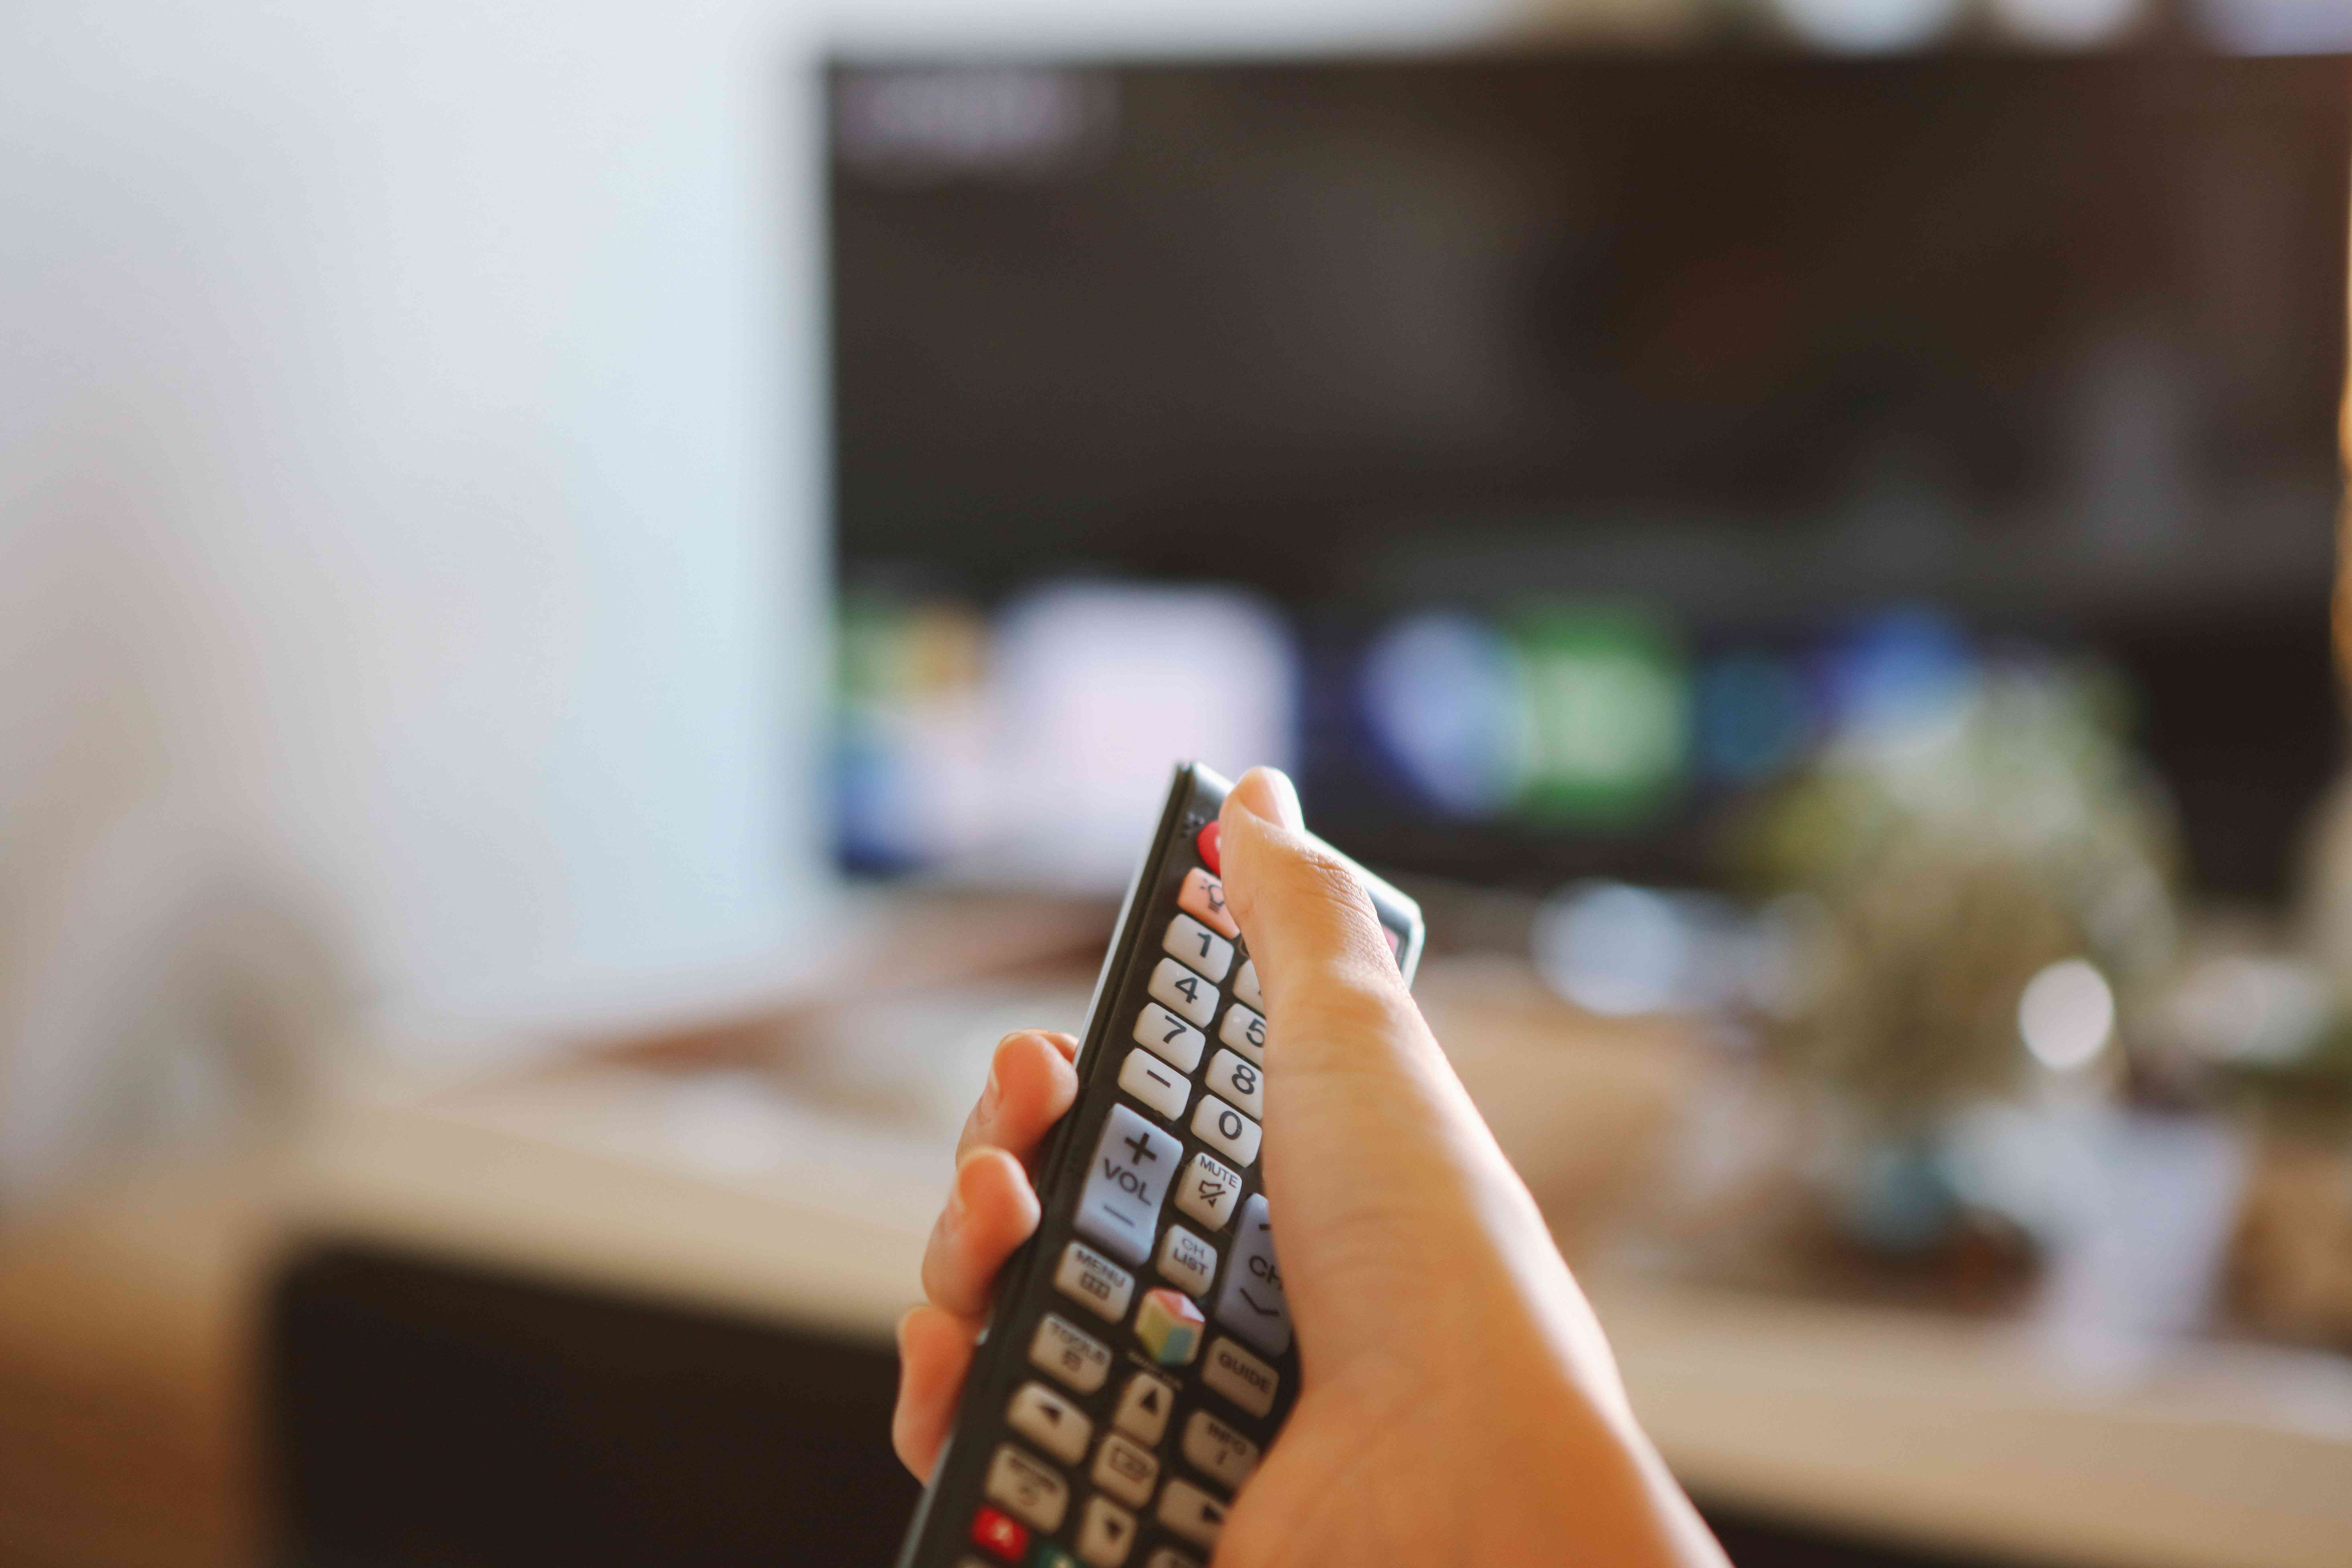 hand holds remote to turn tv off